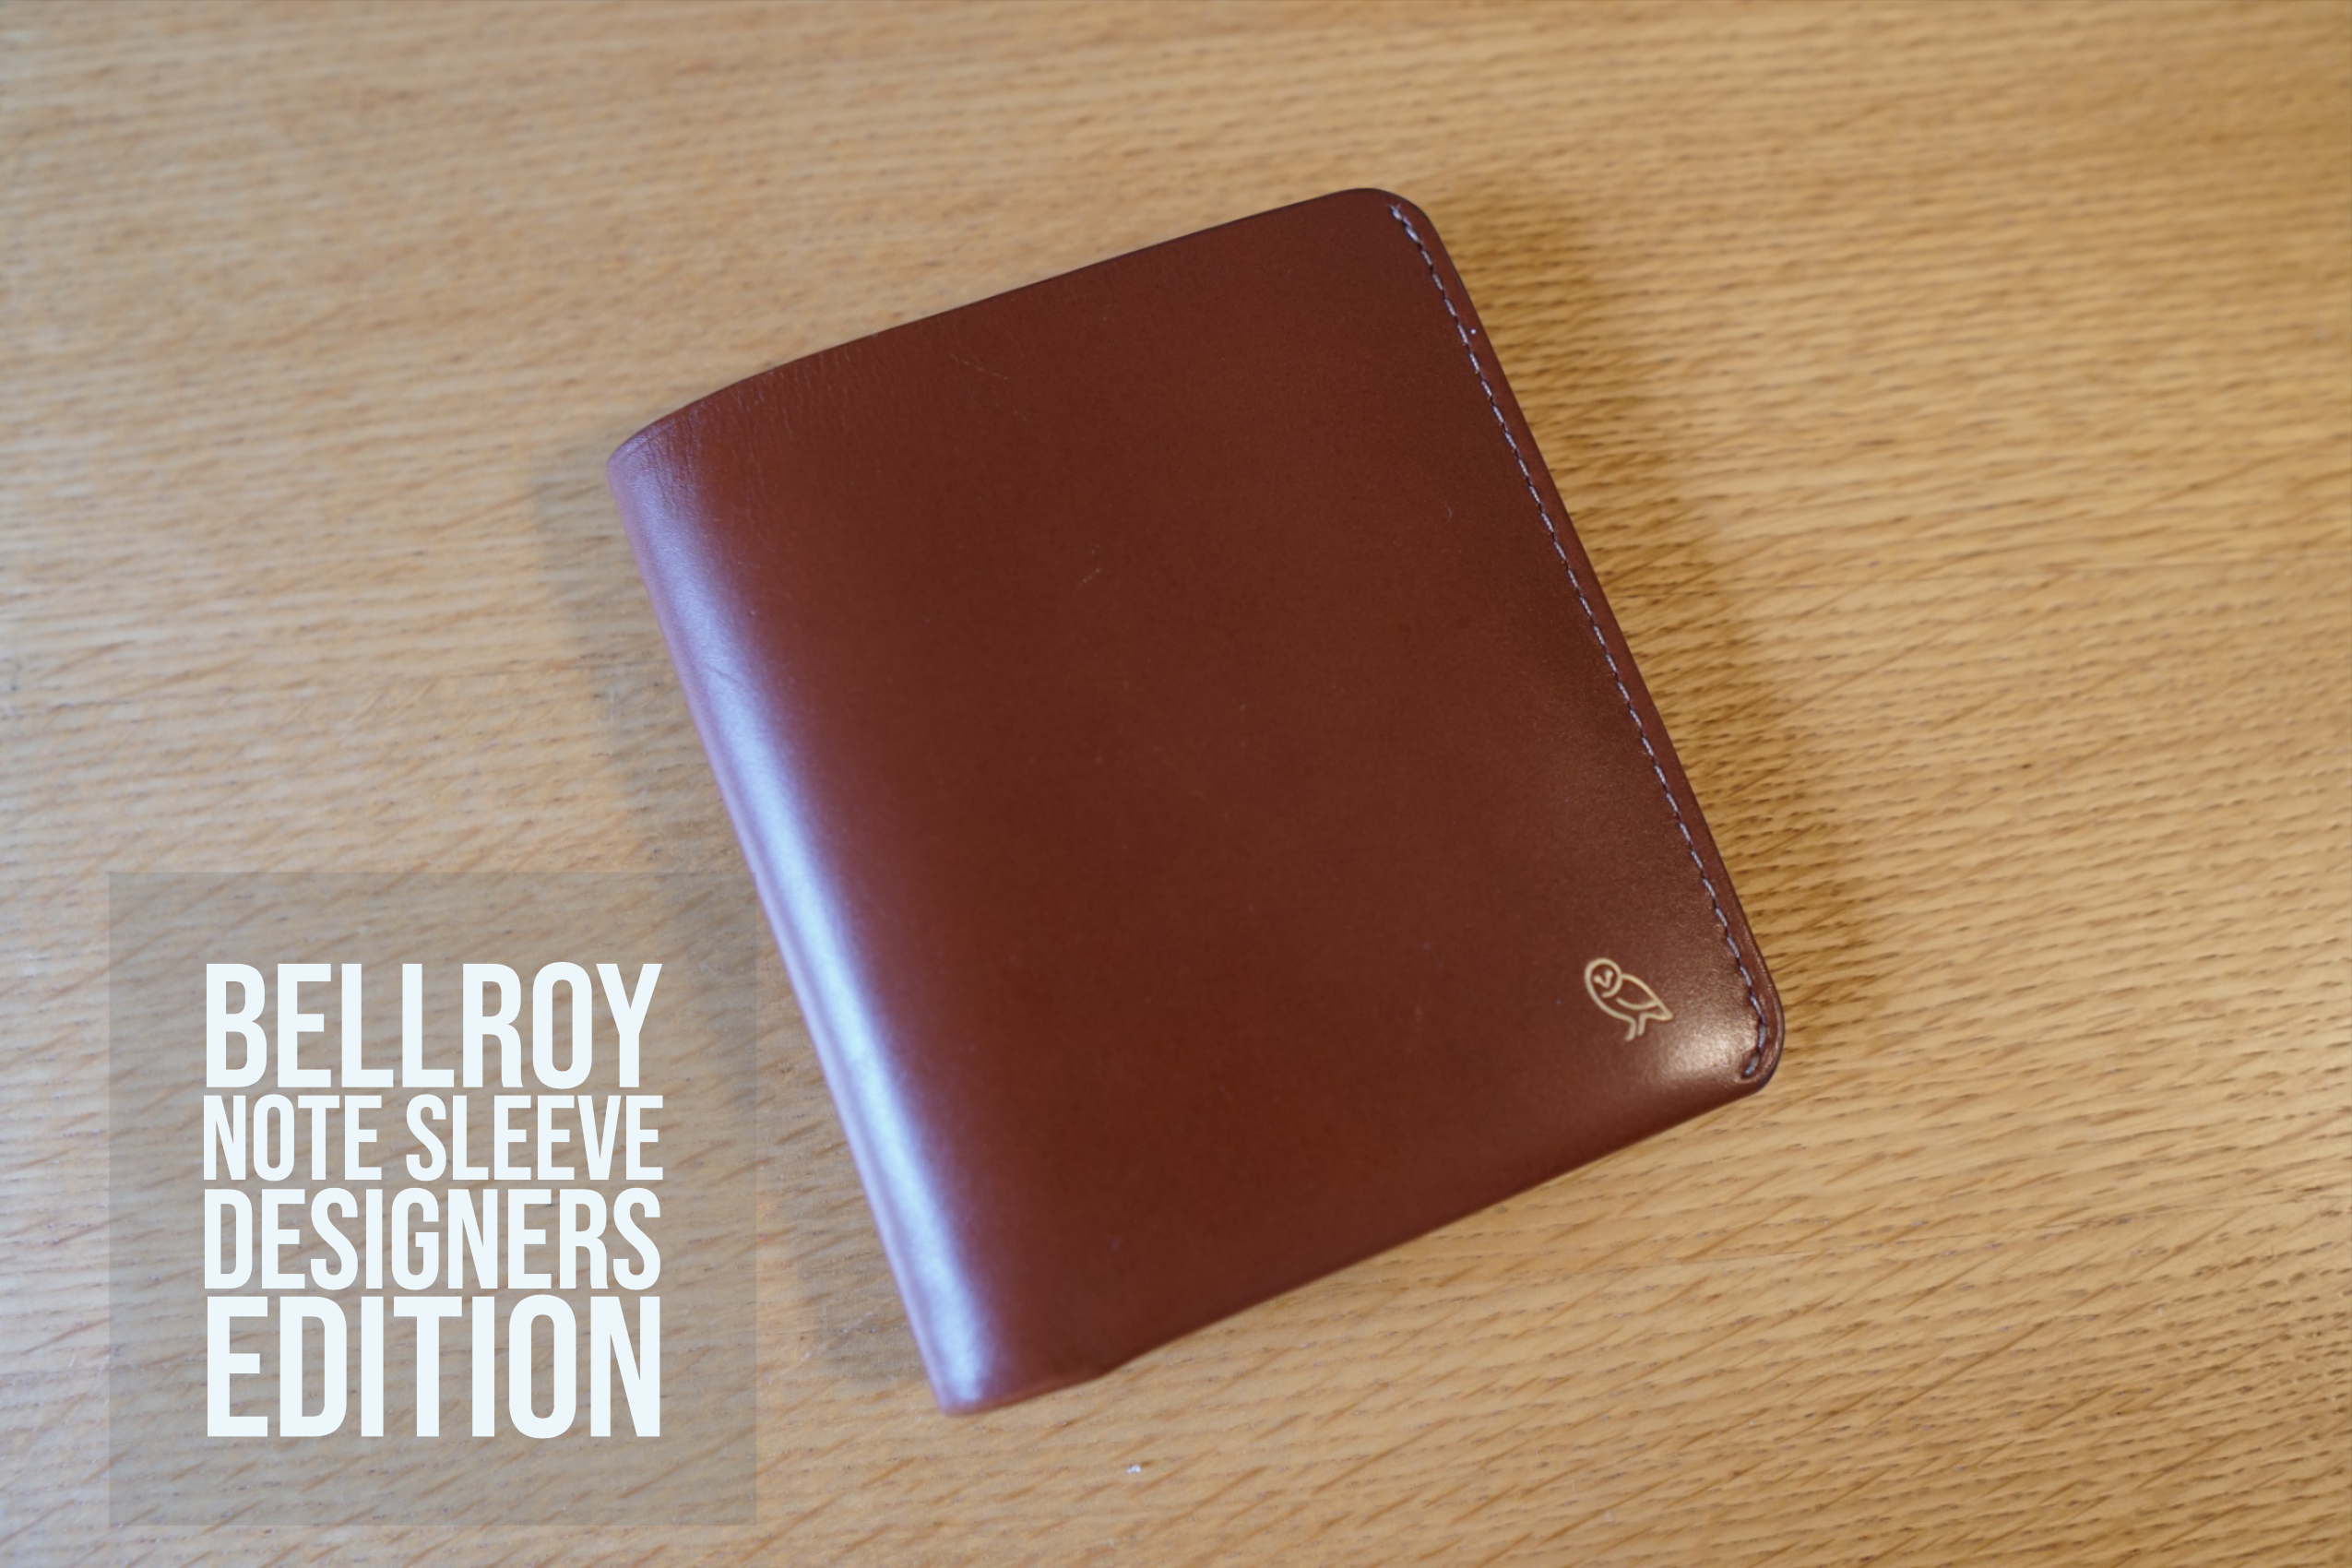 Bellroy Note Sleeve Designers Edition - Review